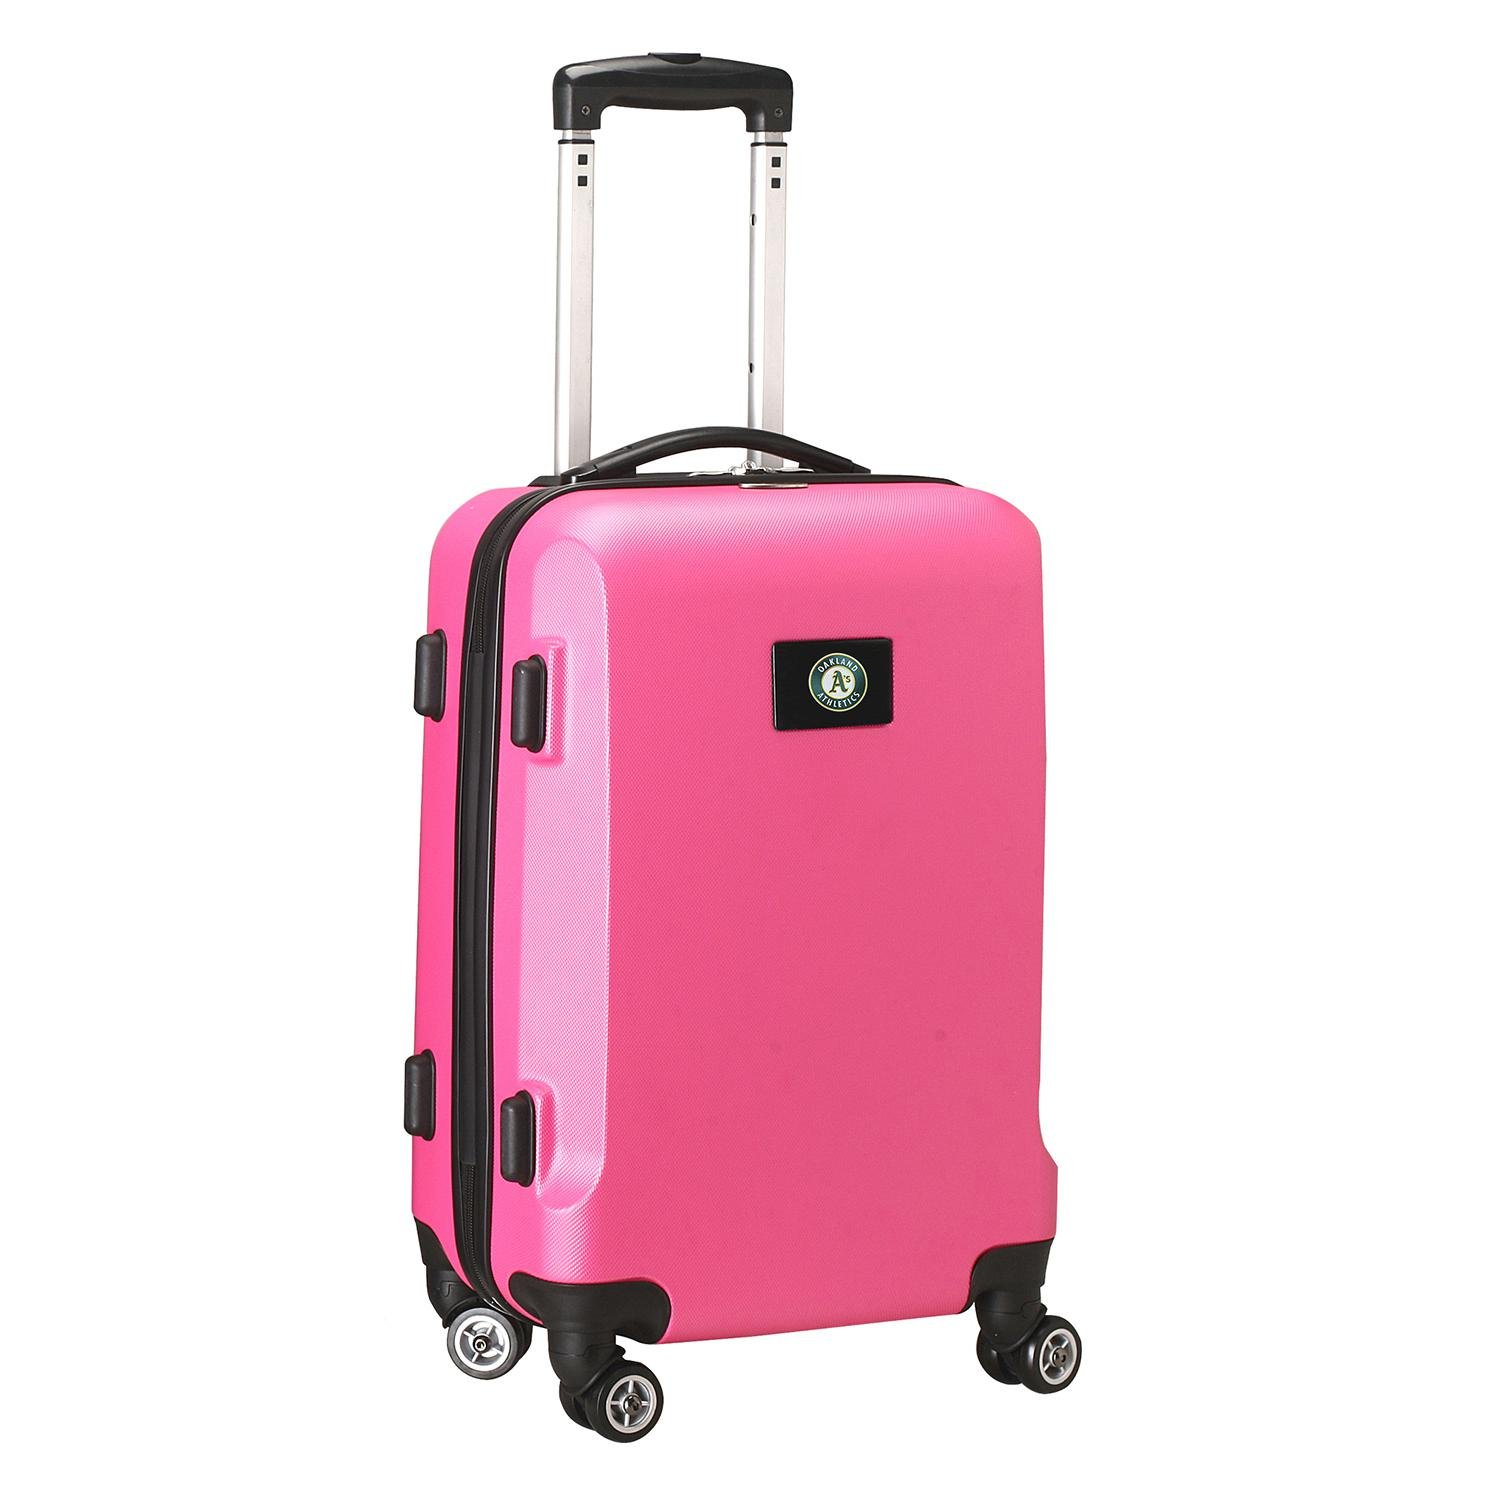 MLB Oakland Athletics Carry-On Hardcase Spinner, Pink by Denco